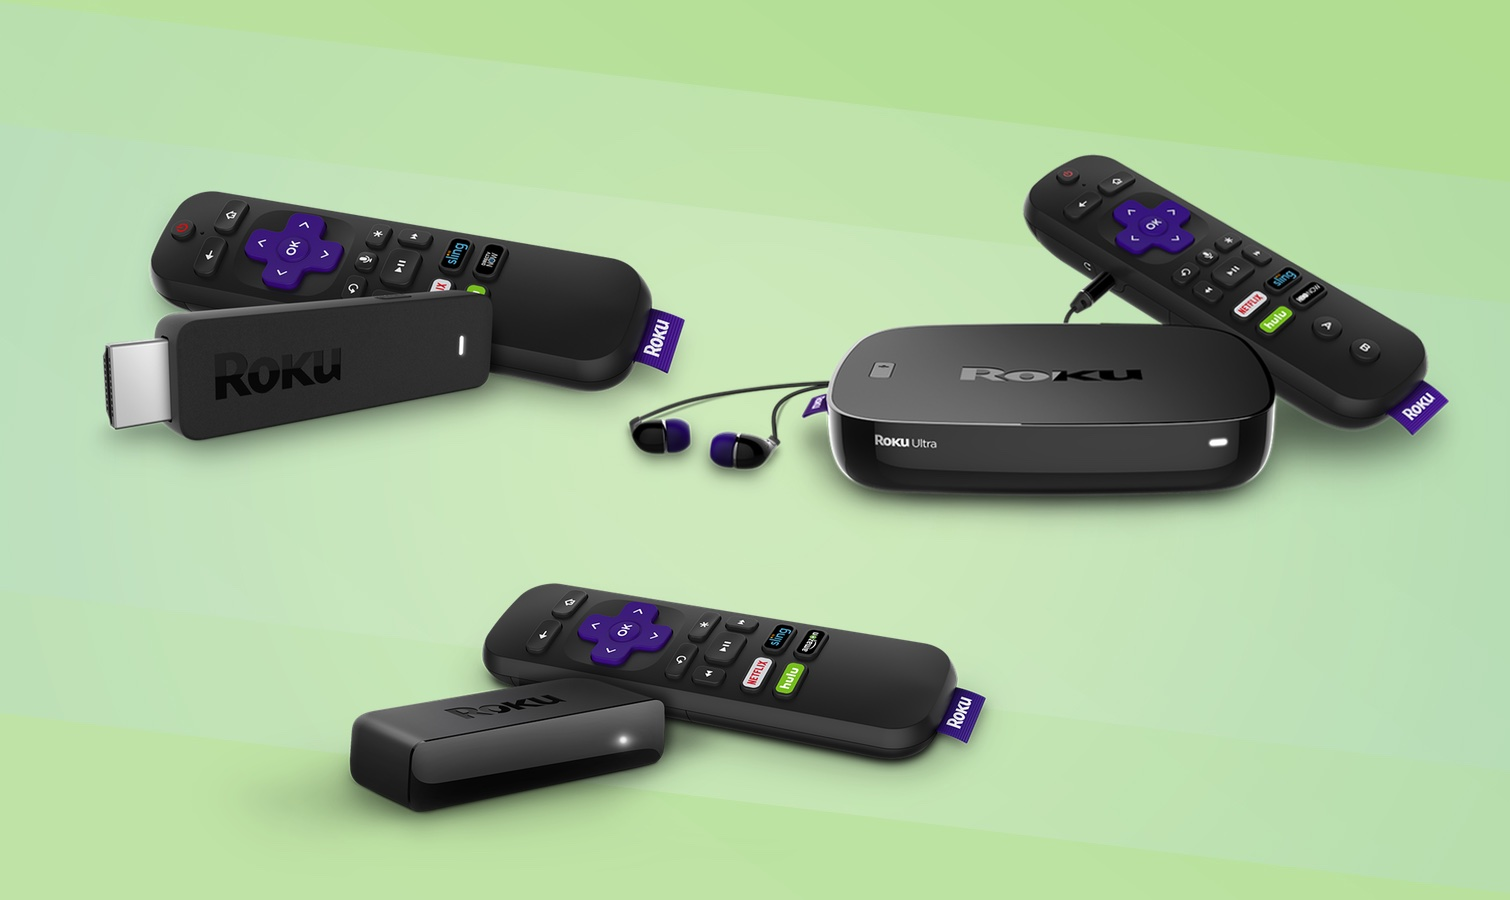 Roku Stick vs Express vs Ultra: Which Streaming Device Is